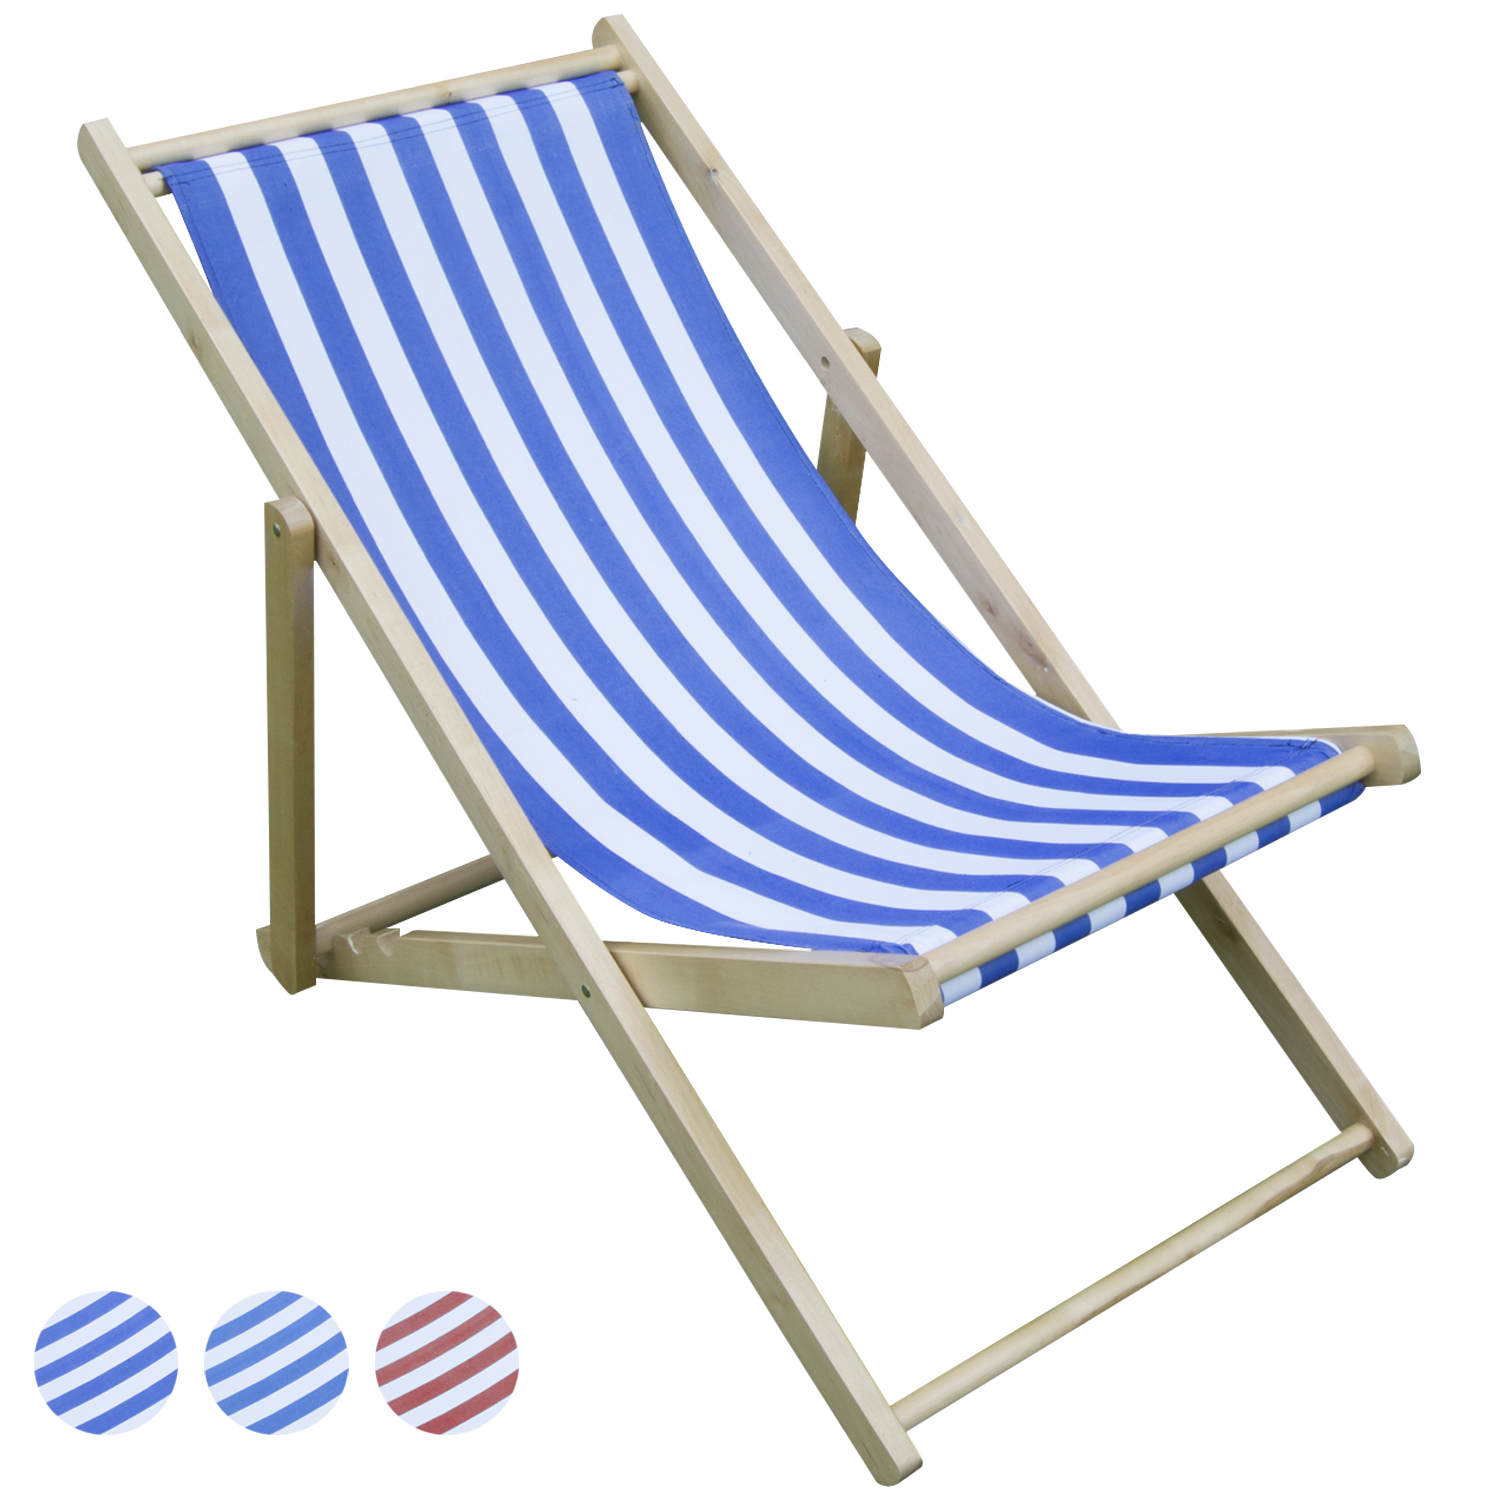 Woodside wooden beach chair furniture outdoor value